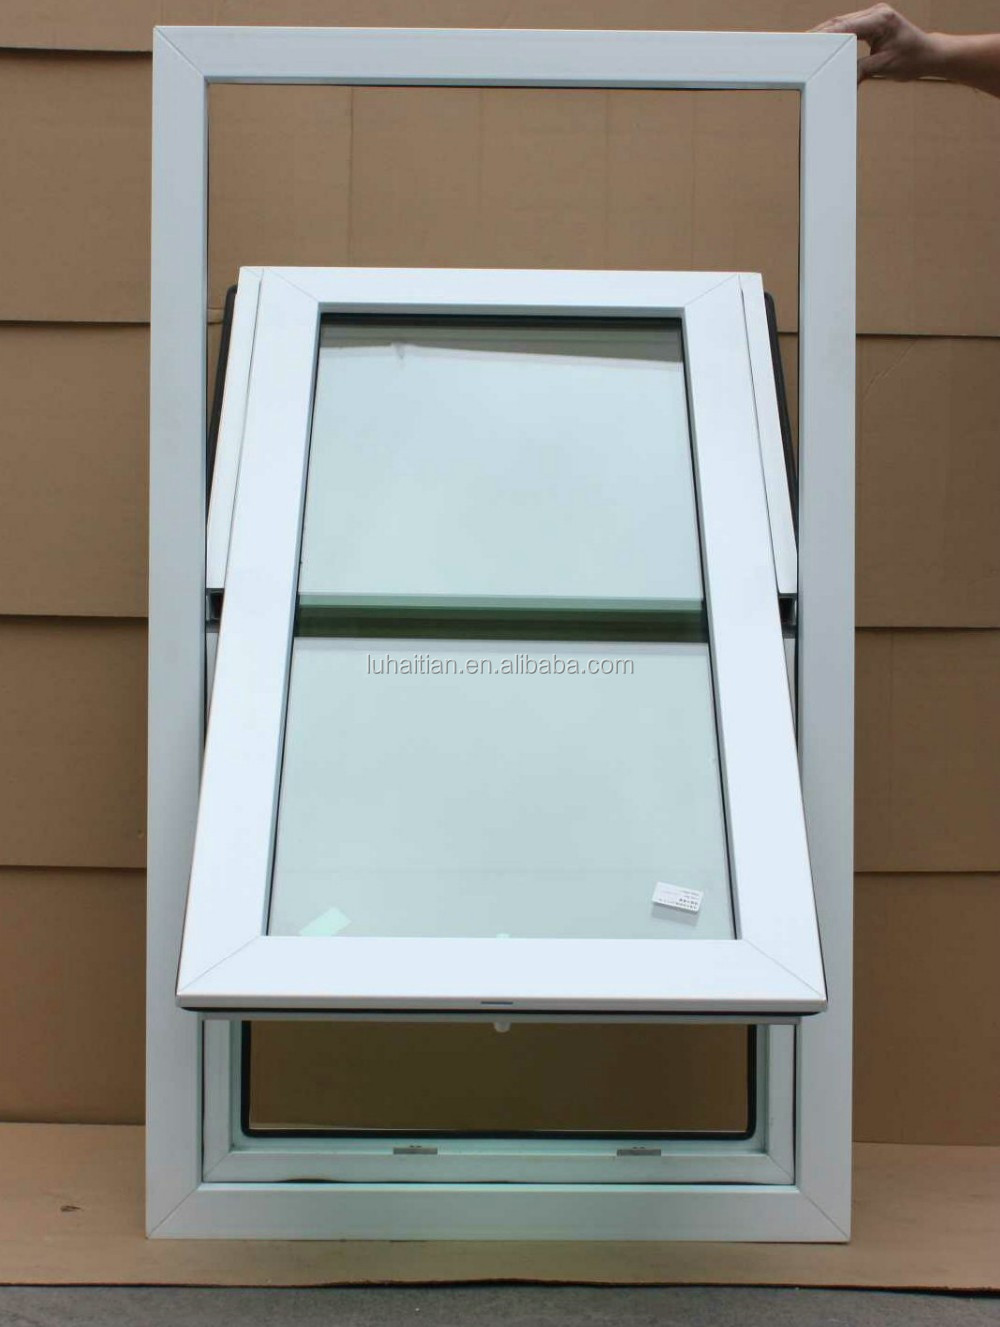 Middle Hung Window, American style profile design